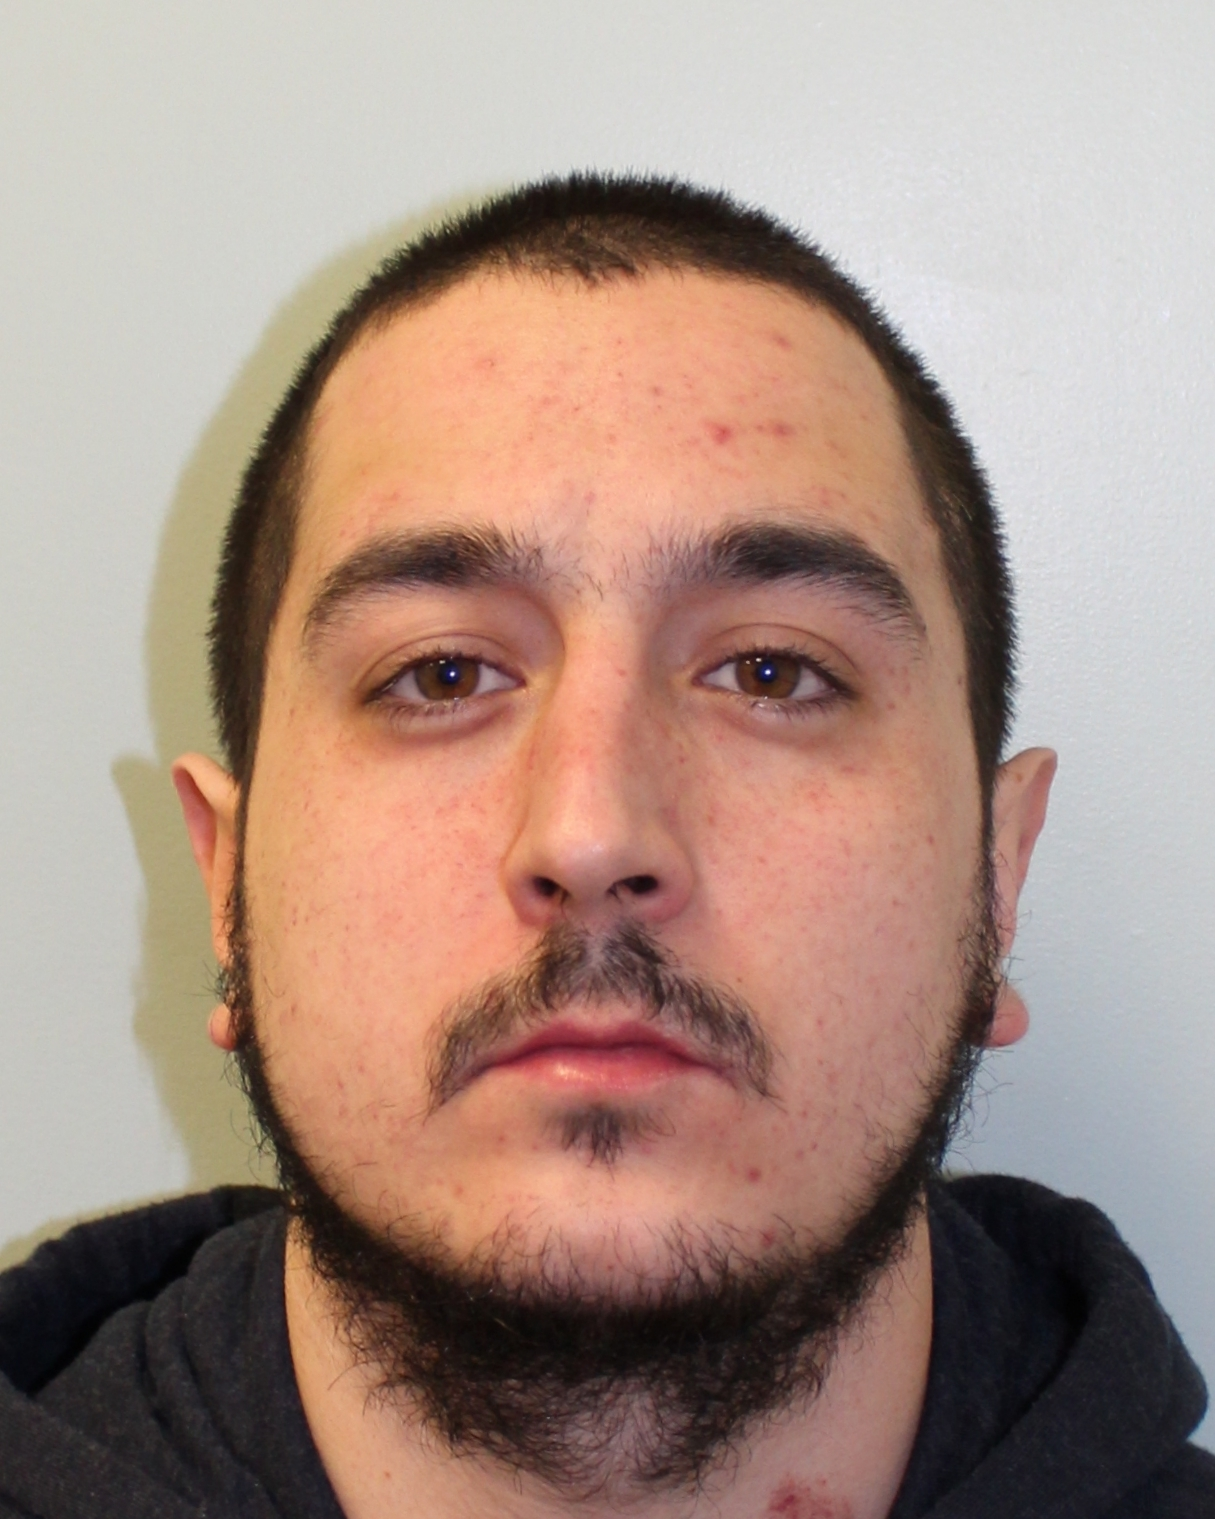 Killer stripped victim of his clothes in bid to cheat justice